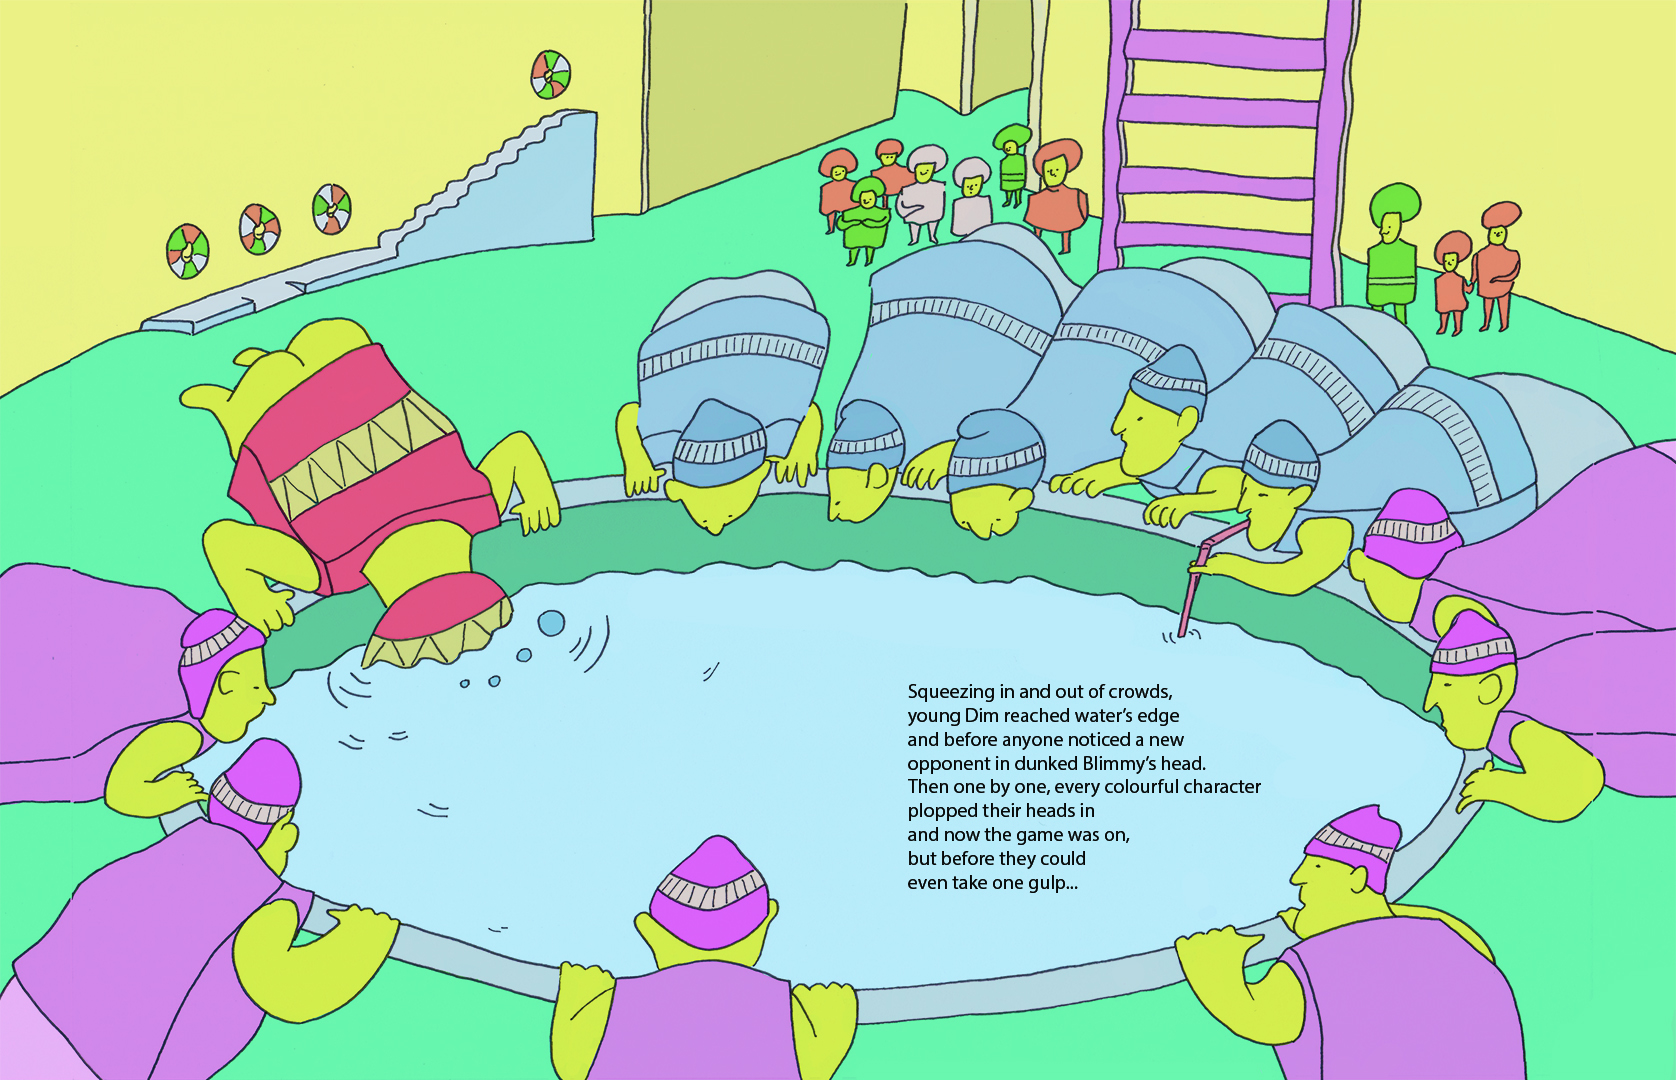 Who's Swallowing their Hiccups: Squeezing in and out of crowds, young Dim reached water's edge and before anyone noticed a new opponent in dunked Blimmy's head. Then one by one, every colourful character plopped their heads in and now the game was on, but before they could even take one gulp…….